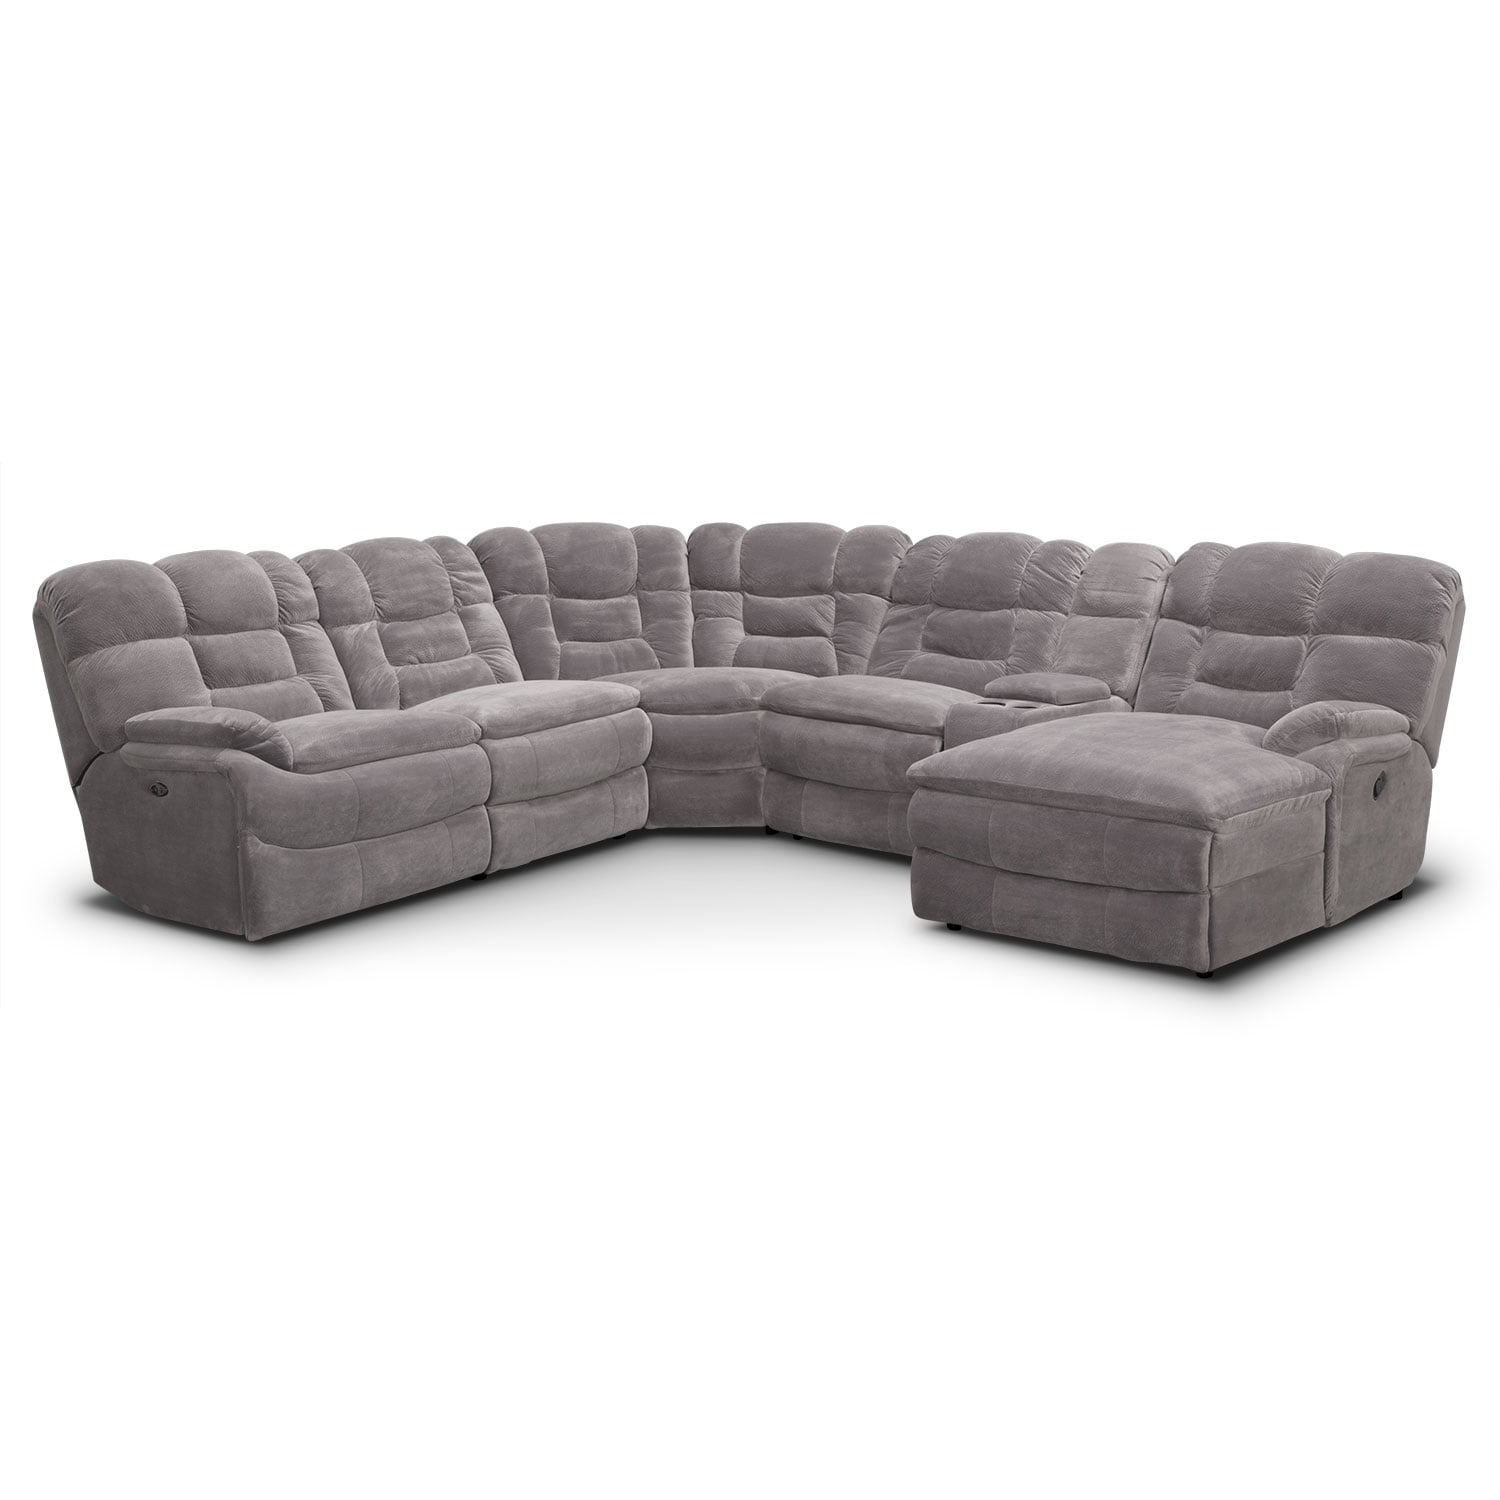 Living Room Furniture - Big Softie II 6 Pc. Power Reclining Sectional